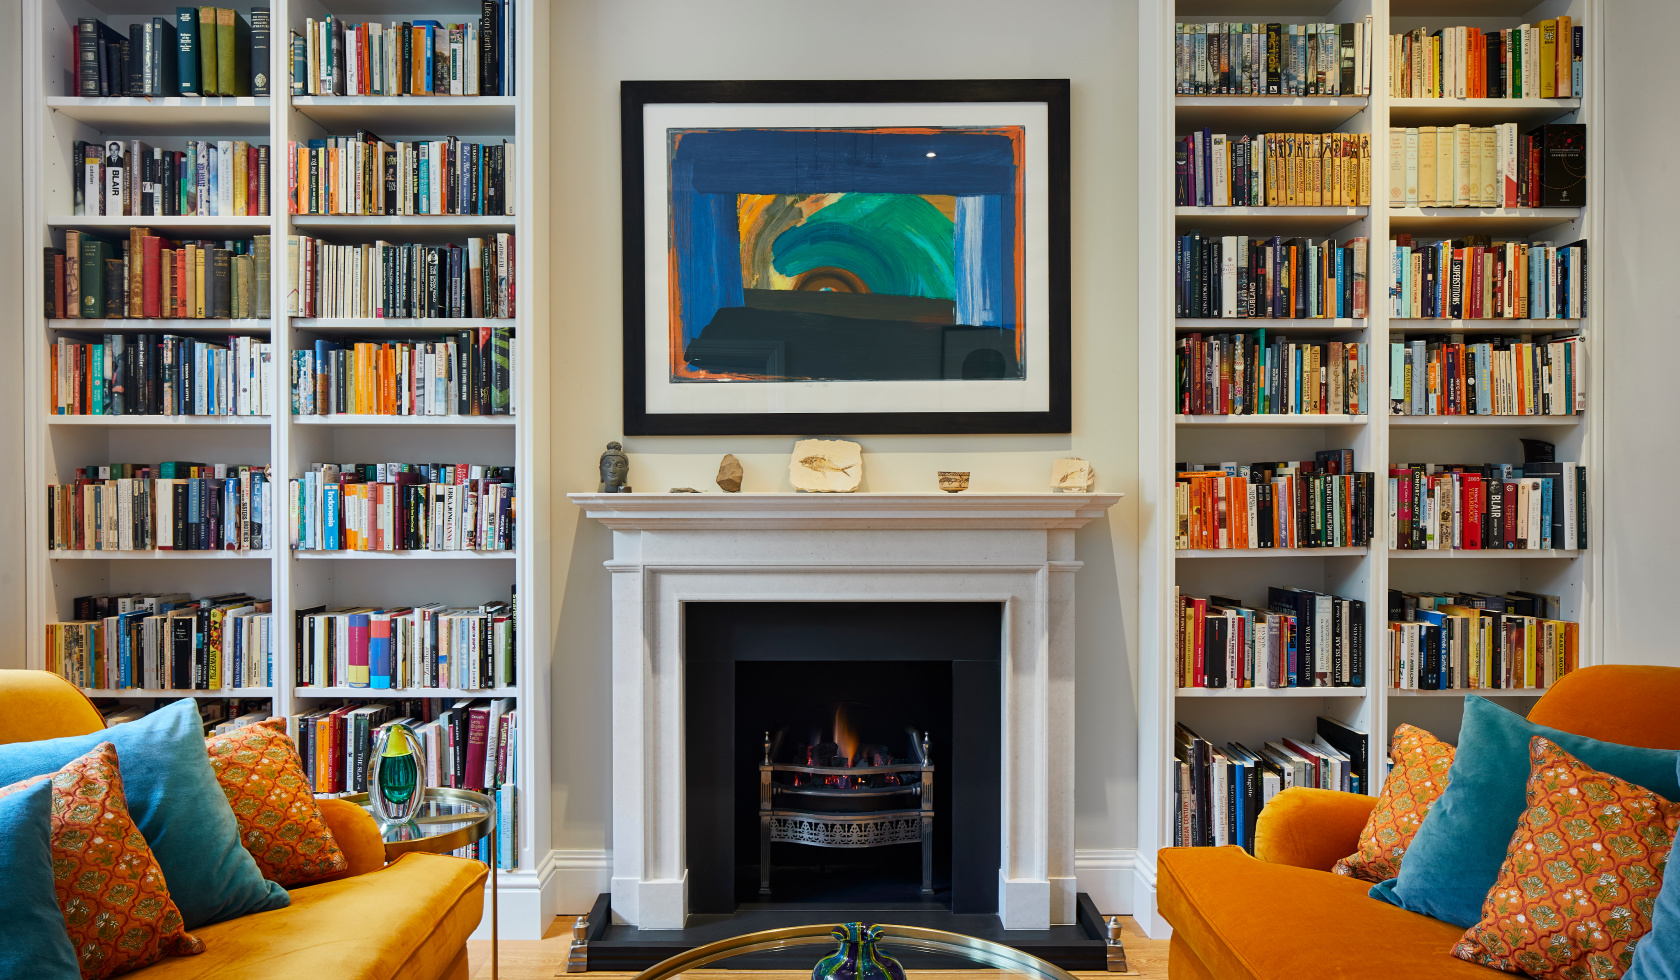 Home Library around fireplace